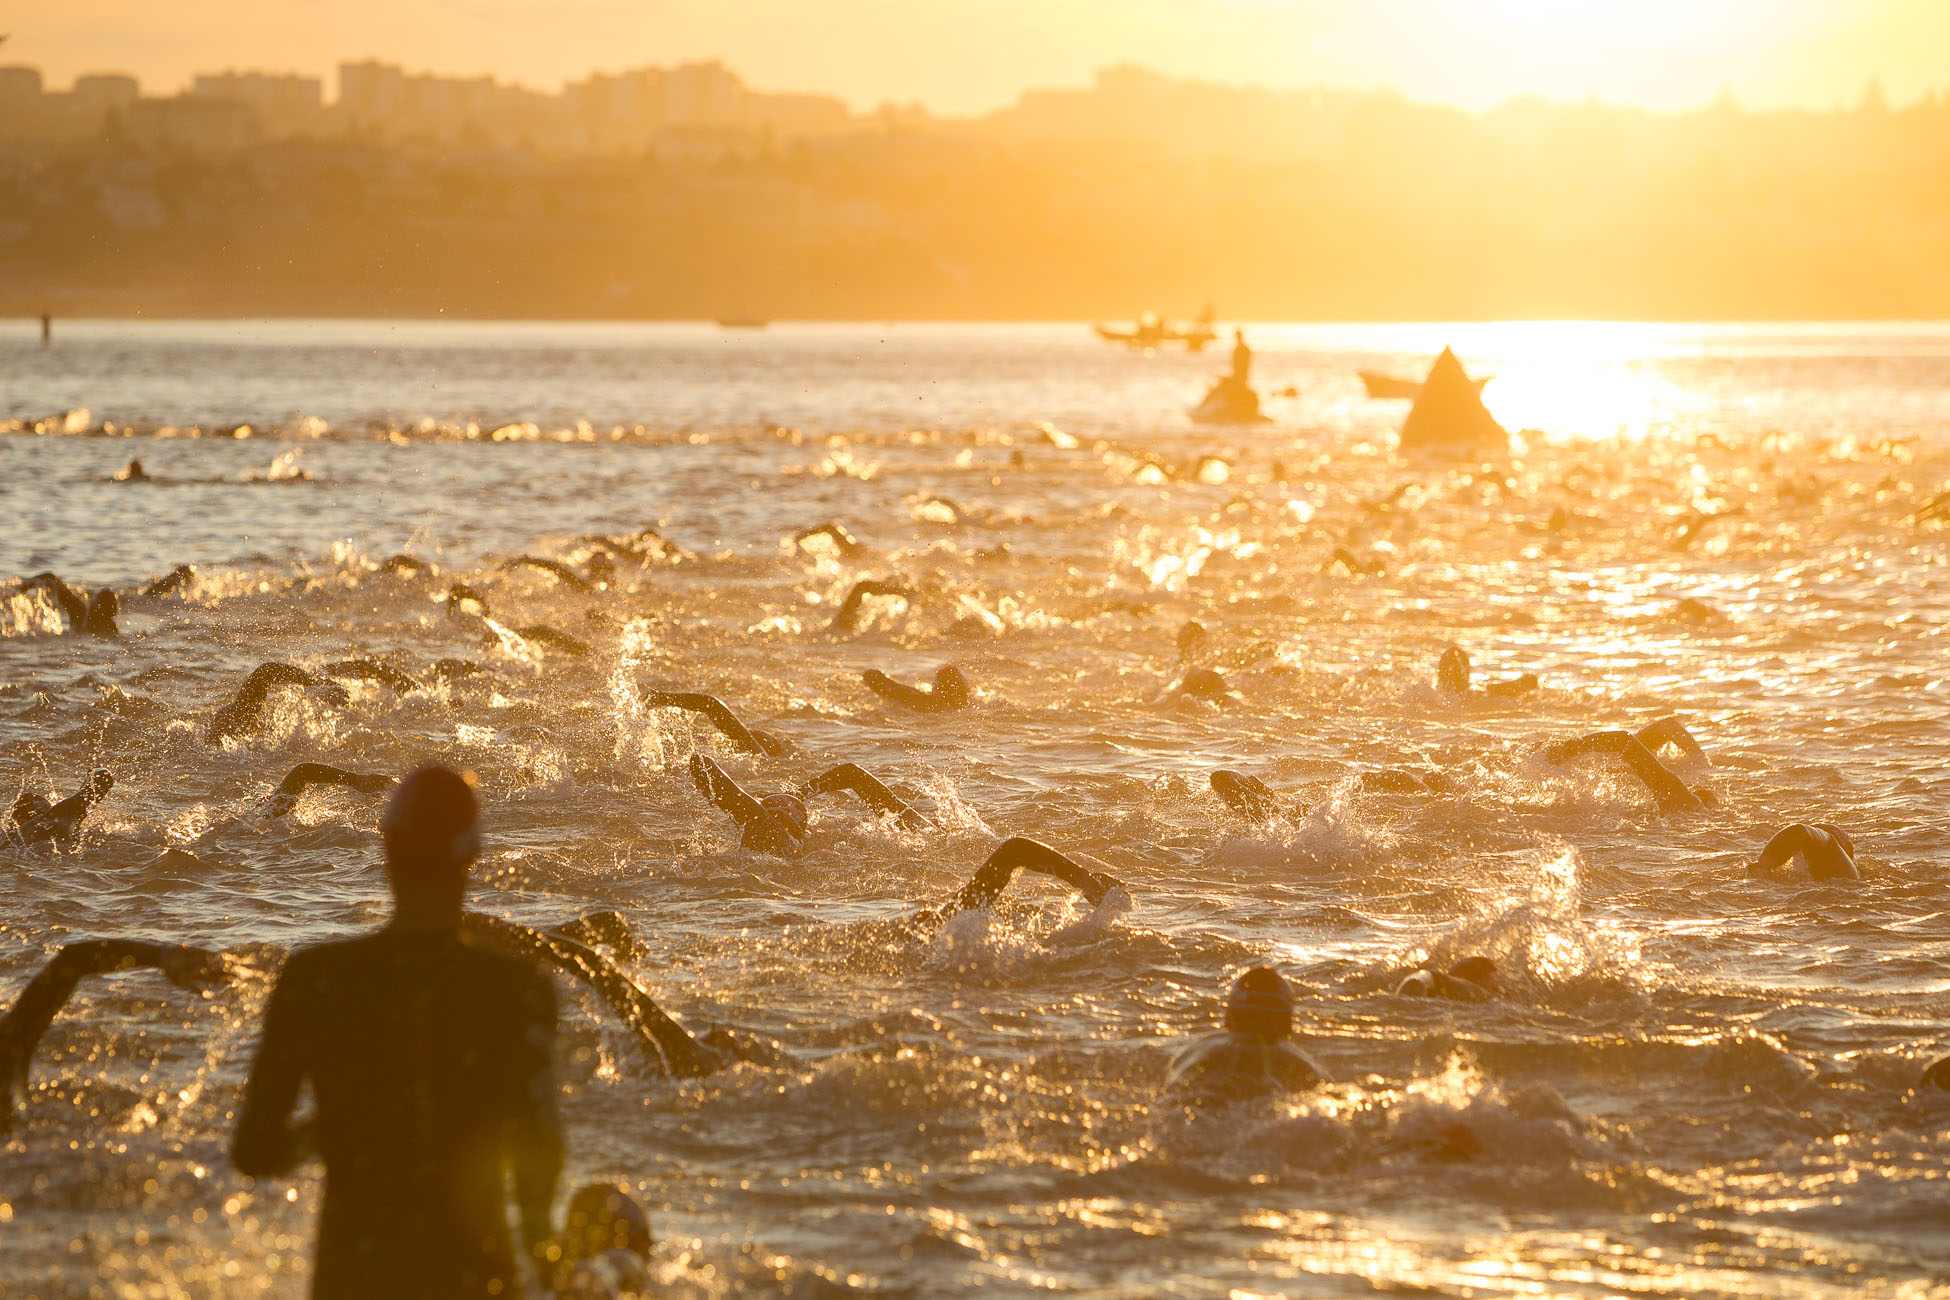 Gonçalo Barriga Sports Photographer - Triathlon swimming Ironman 70.3 Cascais